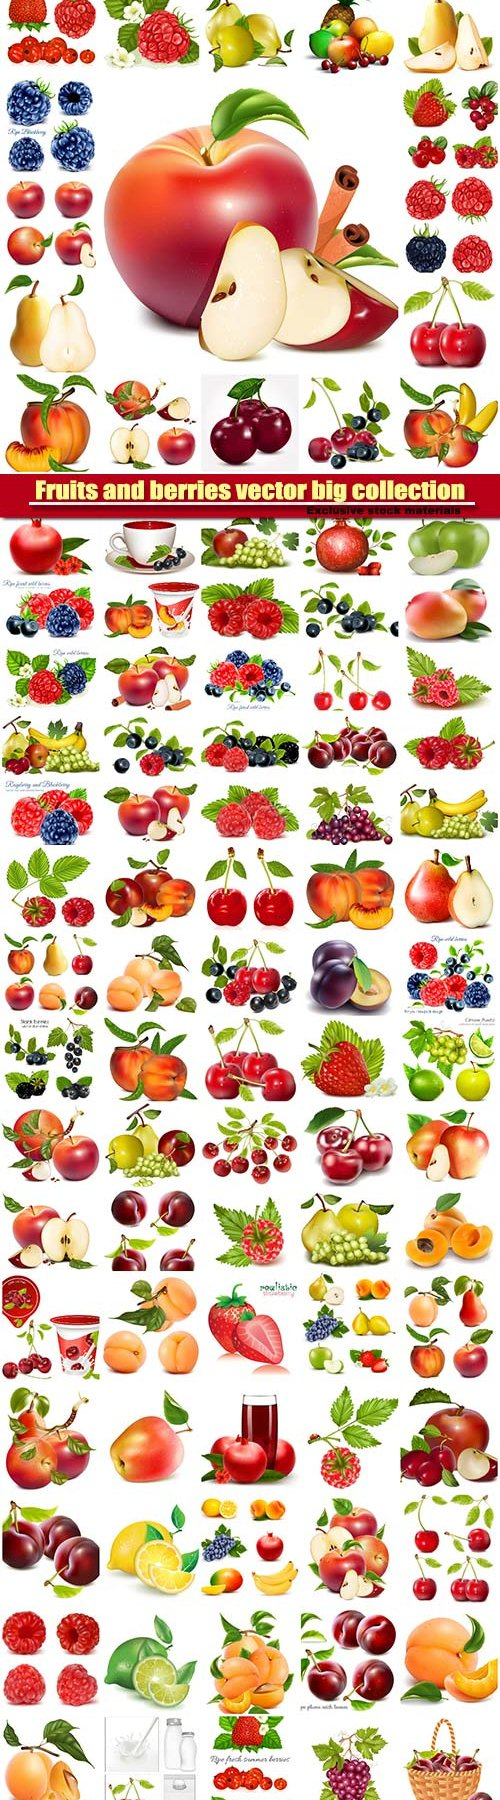 Fruits and berries vector big collection